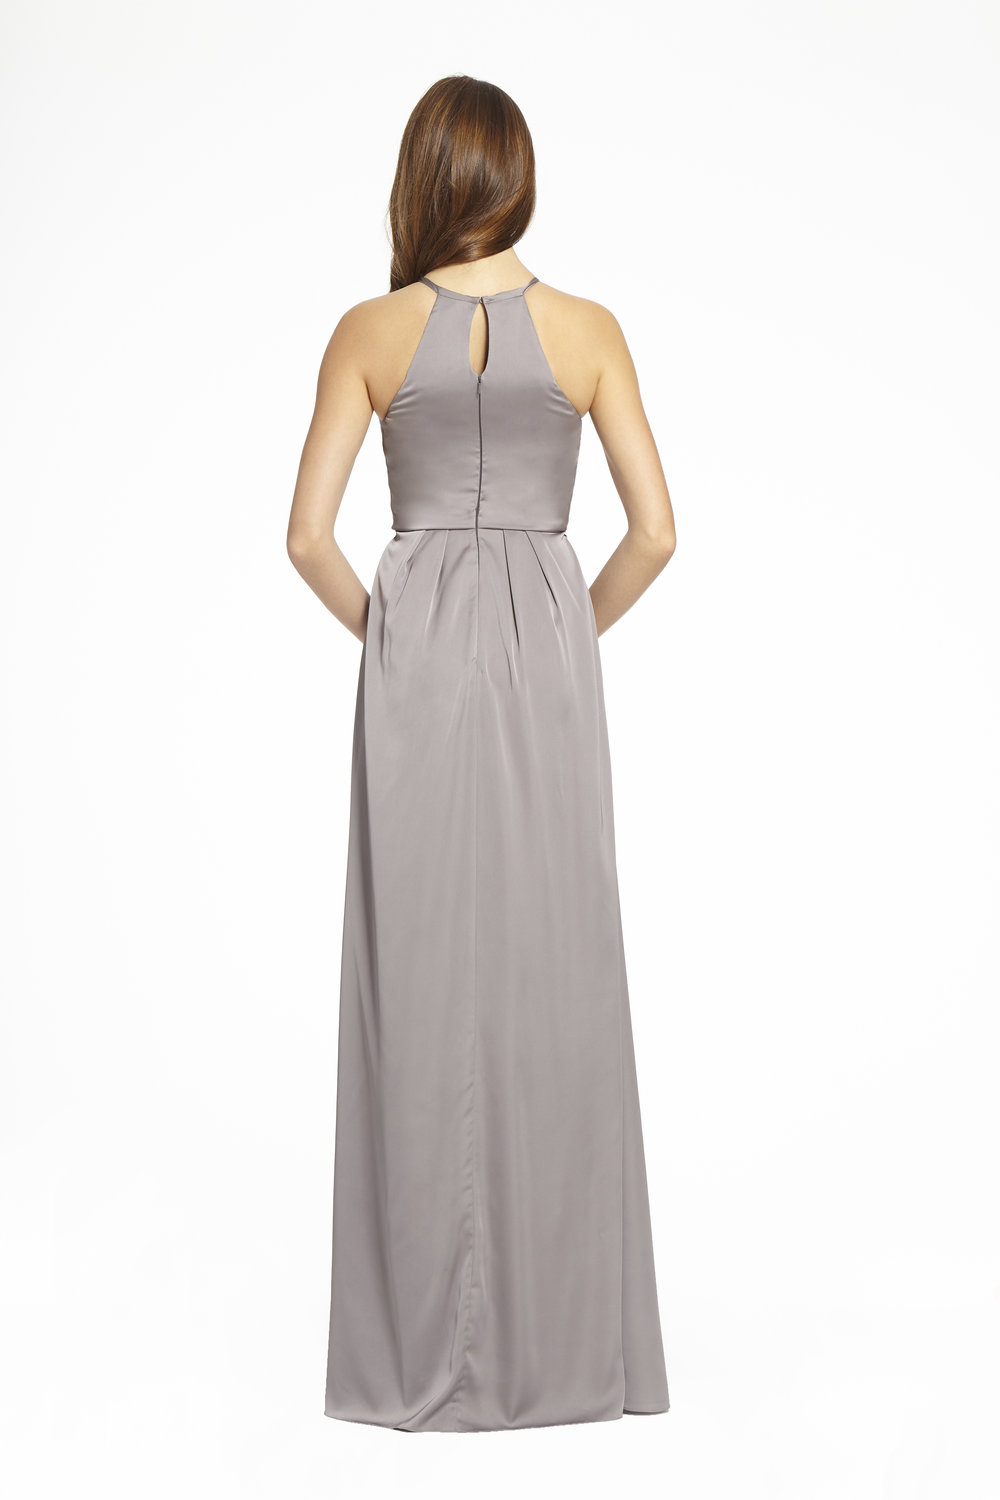 Monique Lhuillier Davina 450550 Sateen